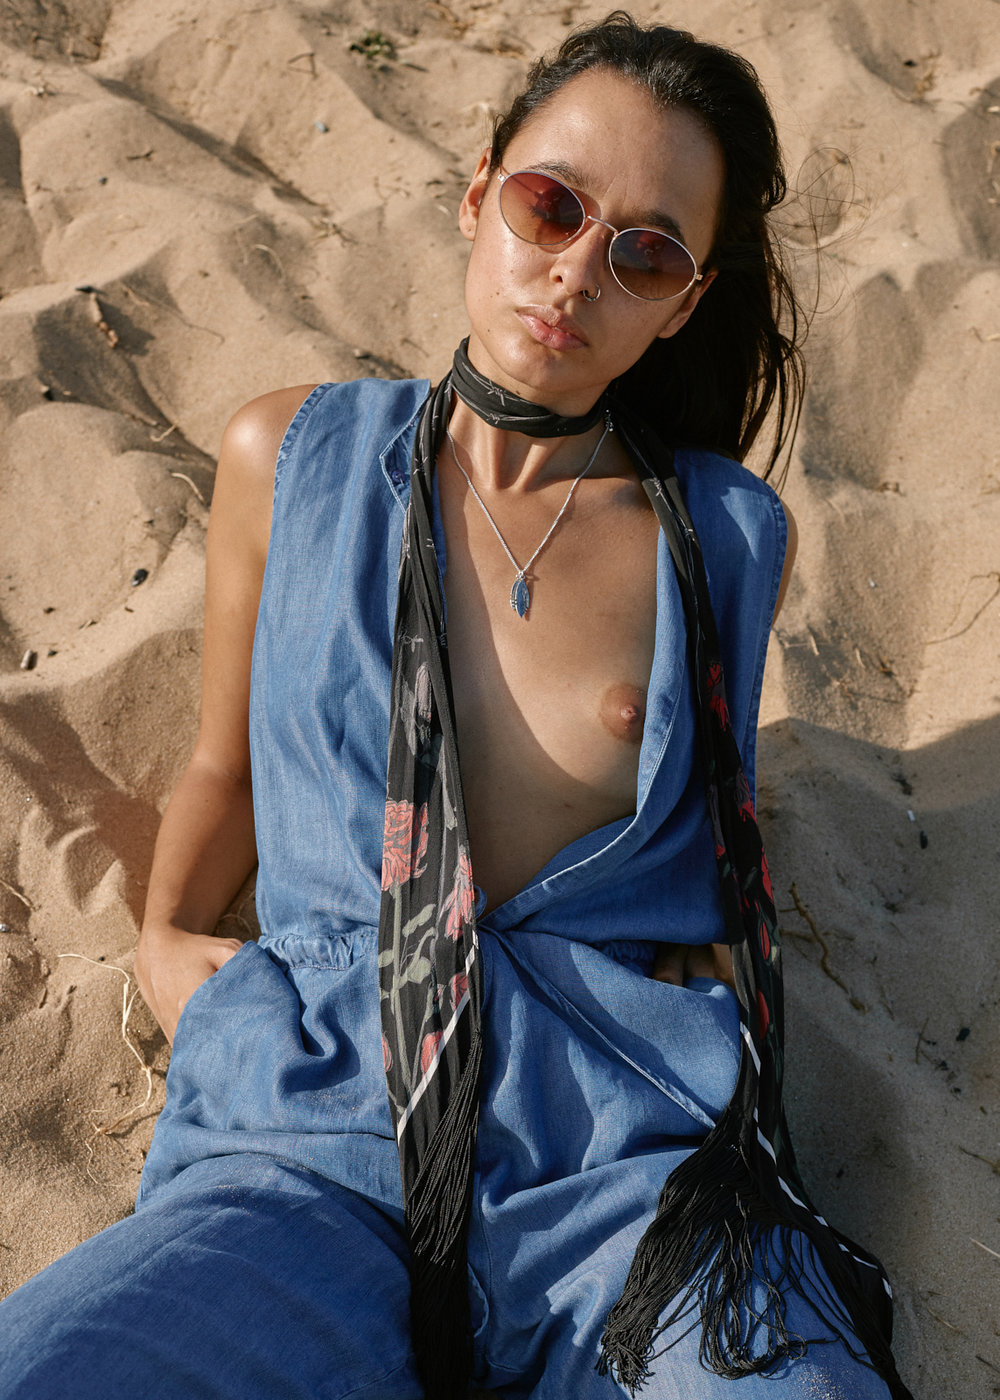 Sophie A Beach - June 2018 - 0164 web.jpg